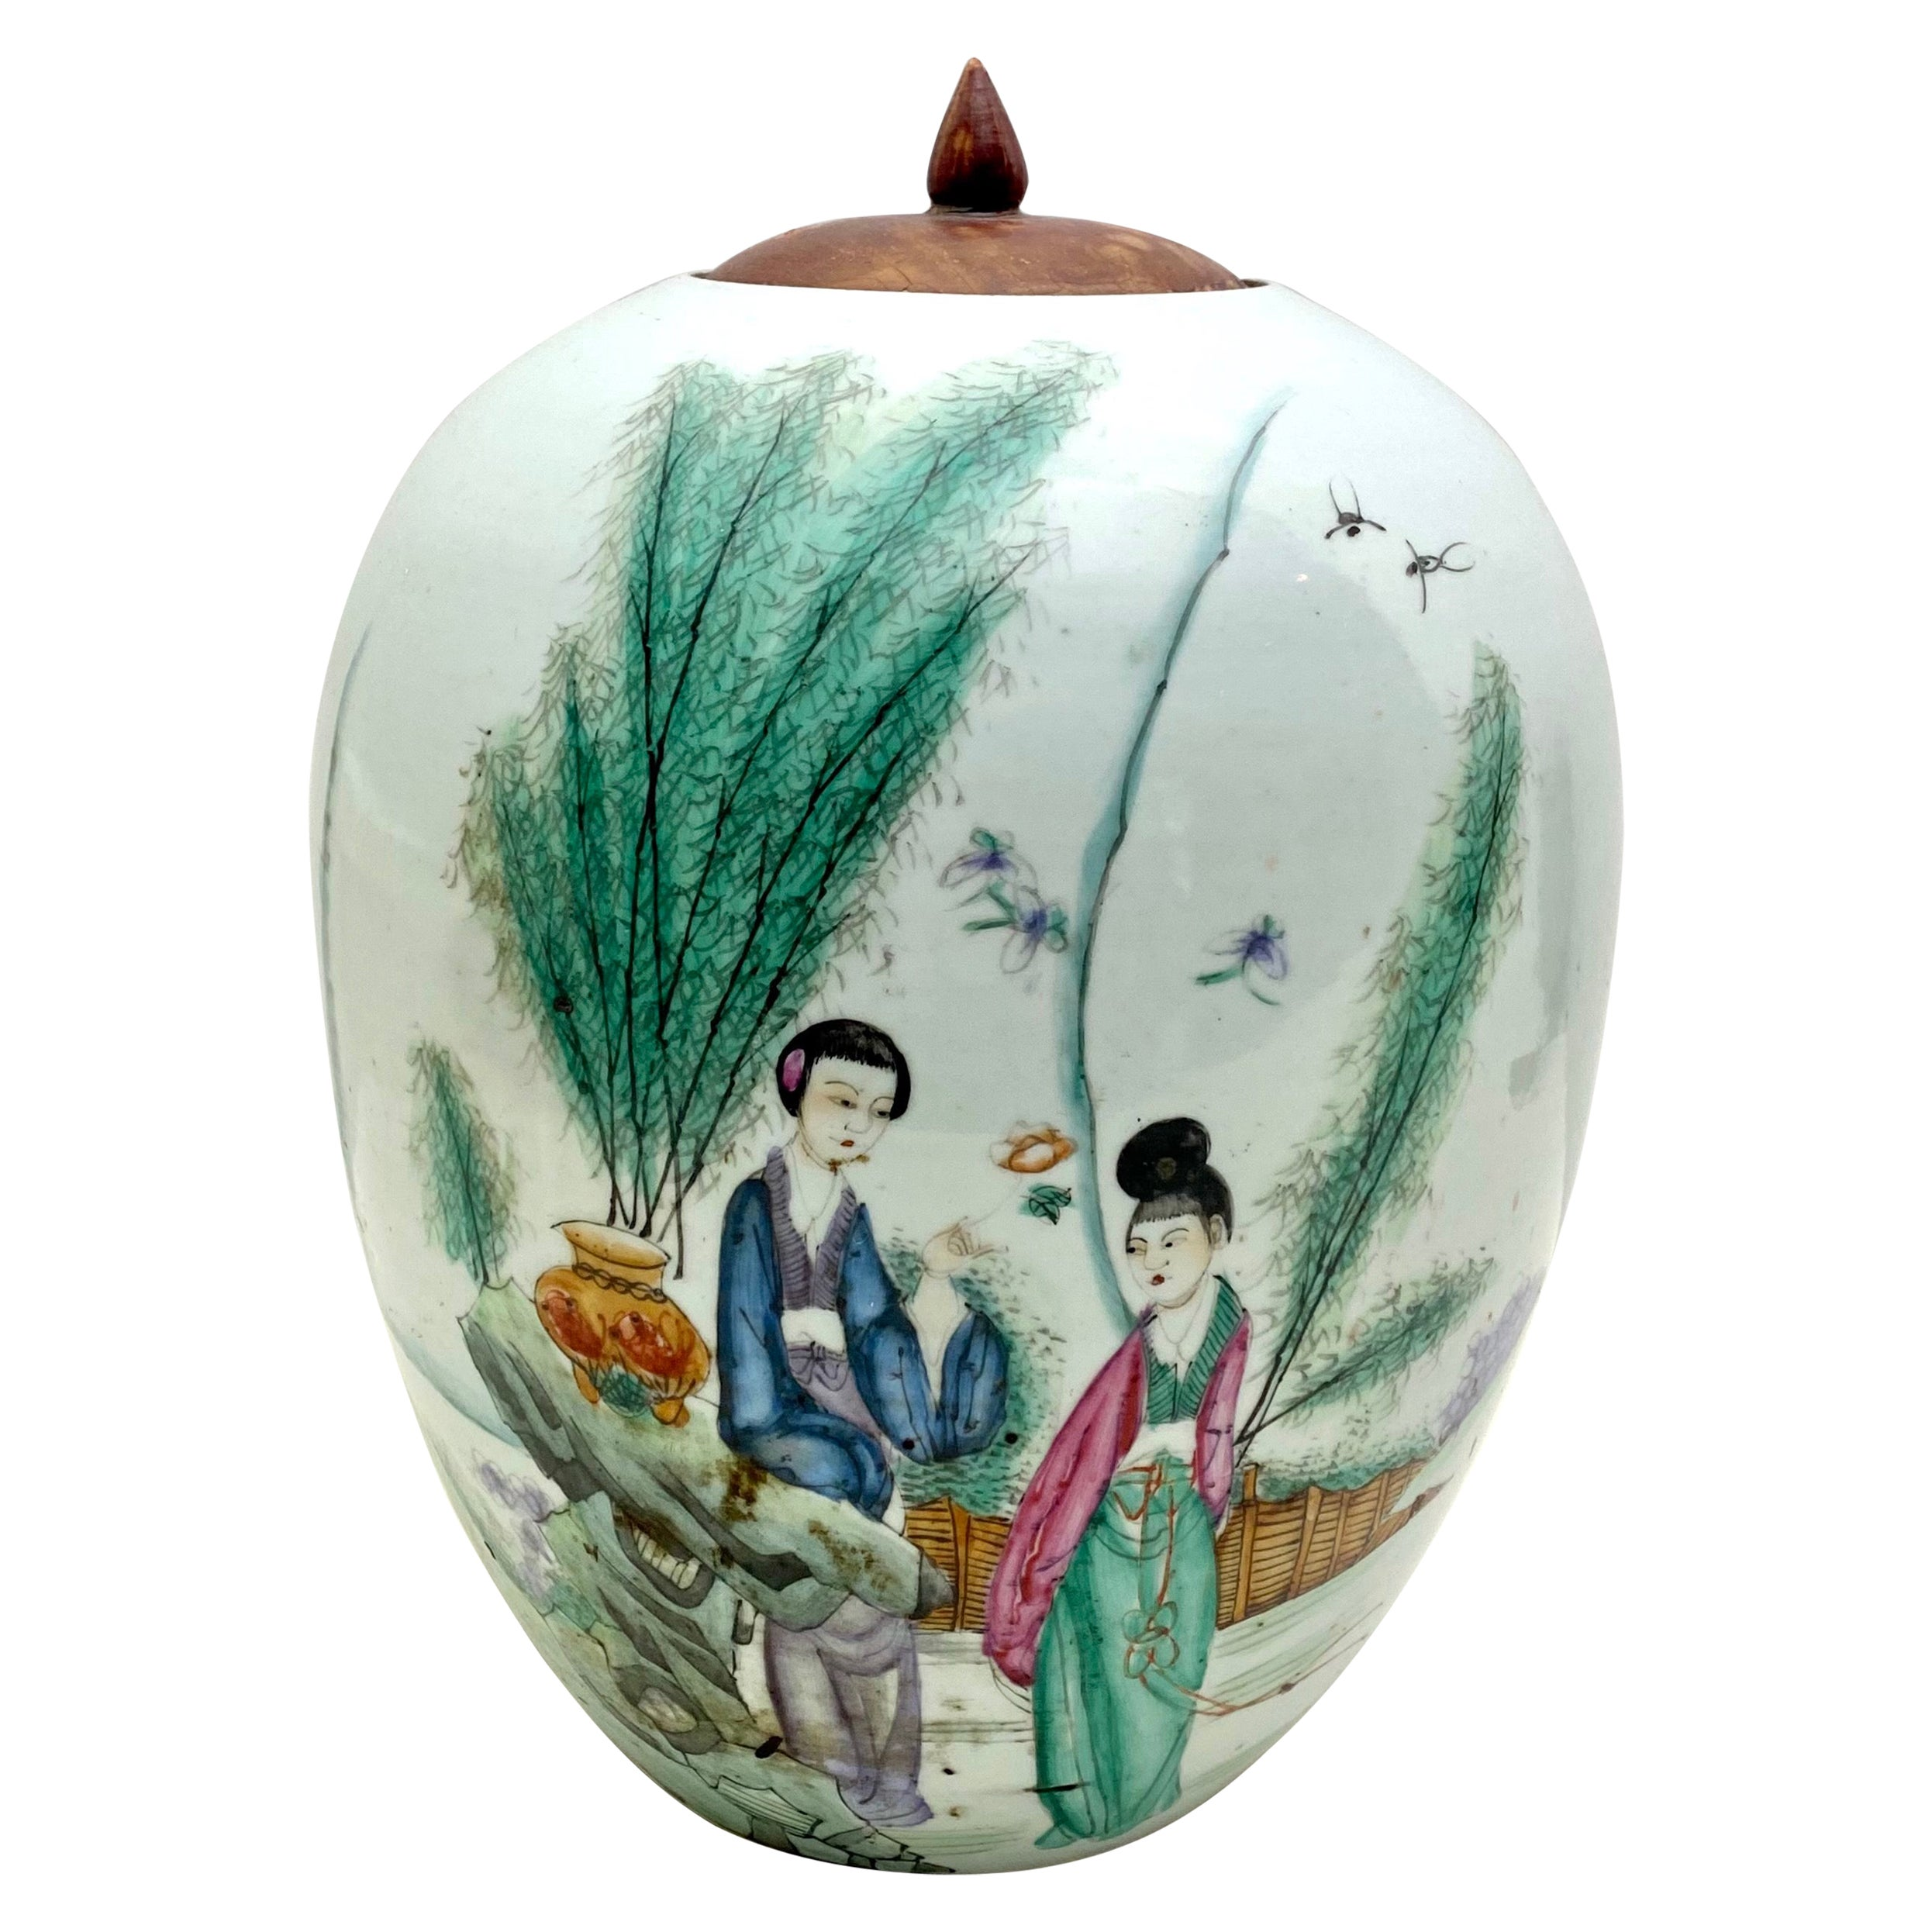 Chinese Porcelain Vase with Lid and Hand Painted Decoration